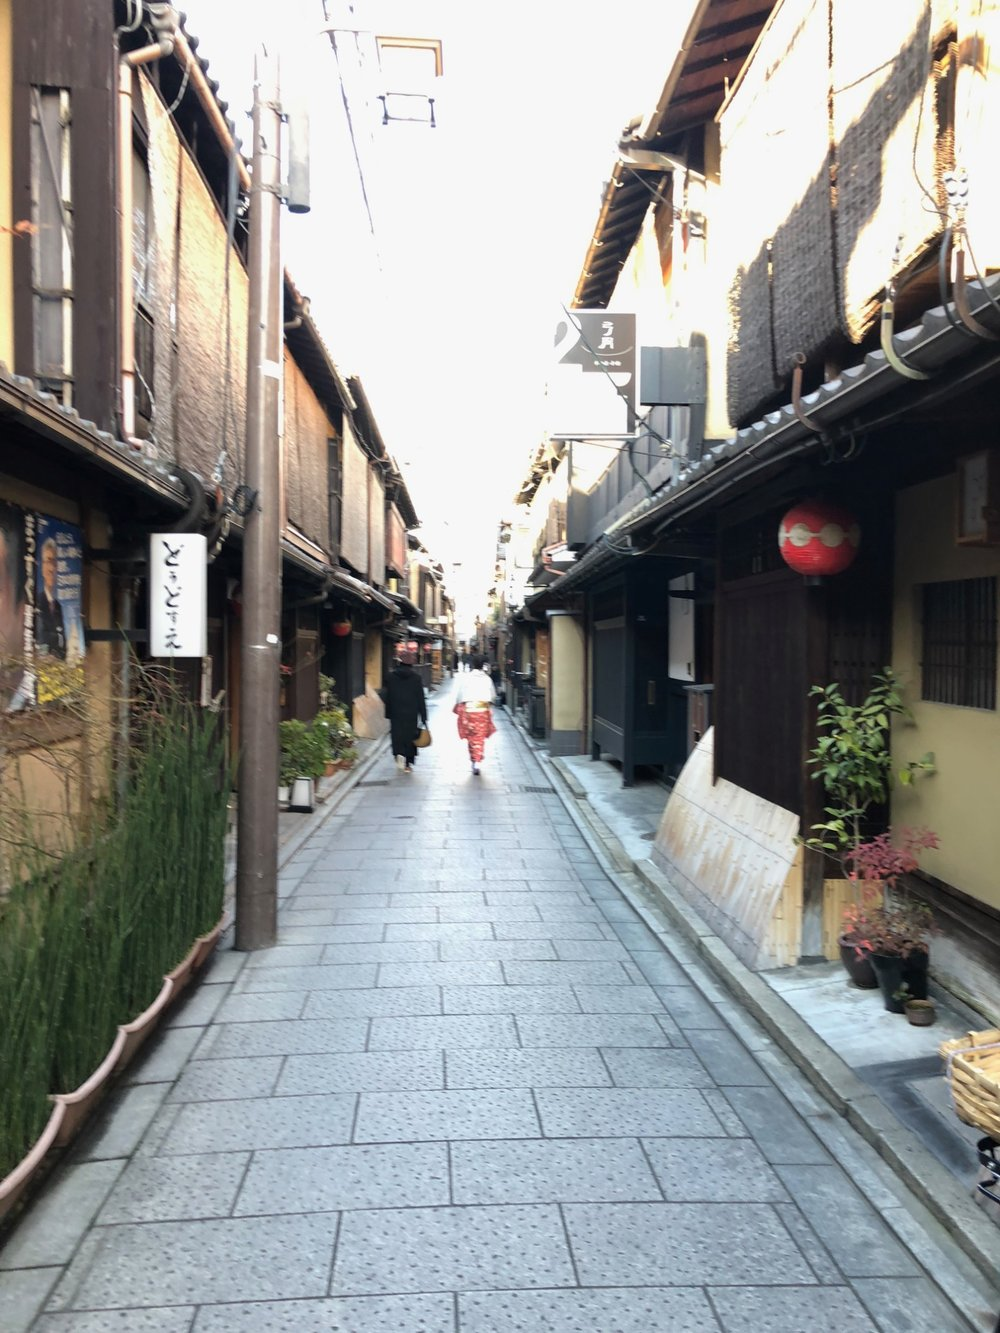 Geisha walks down side street of Gion district in Kyoto, Japan. boldlygotravel.com